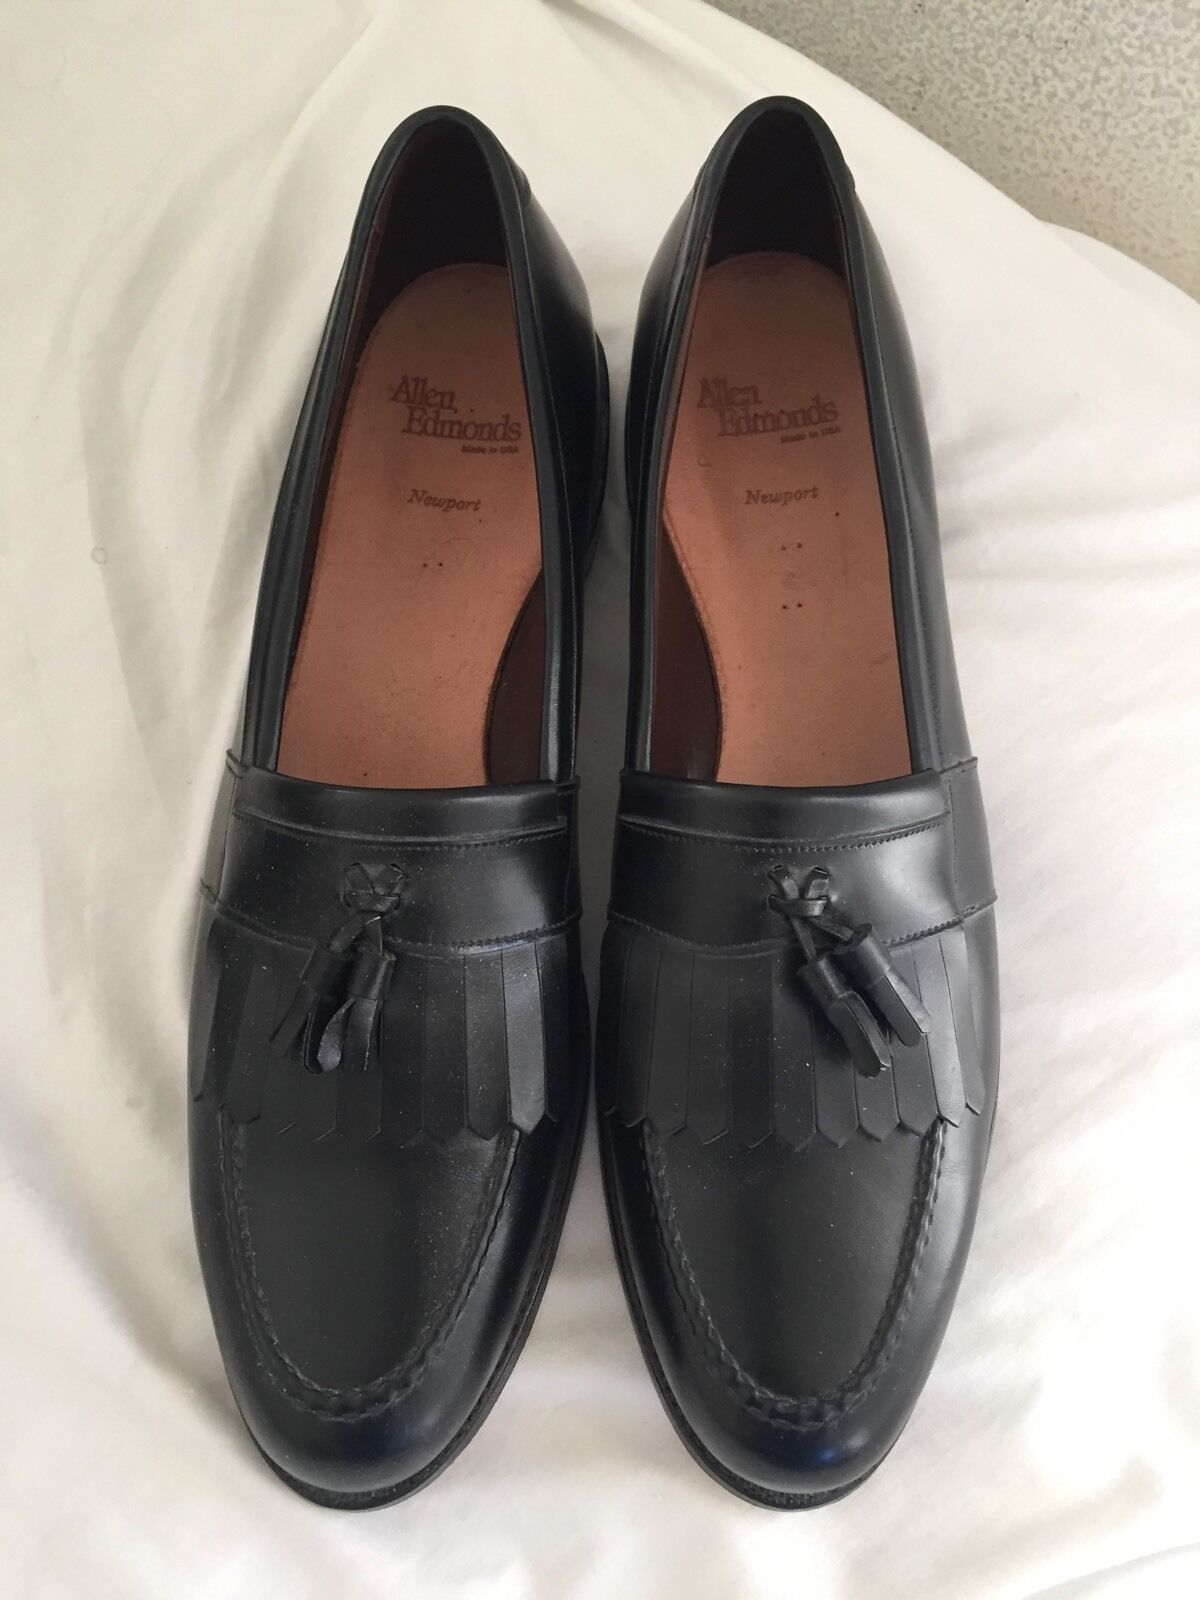 Allen Edmonds nouveauport Tassel Mocassin 14 AAA  325 MADE IN THE USA